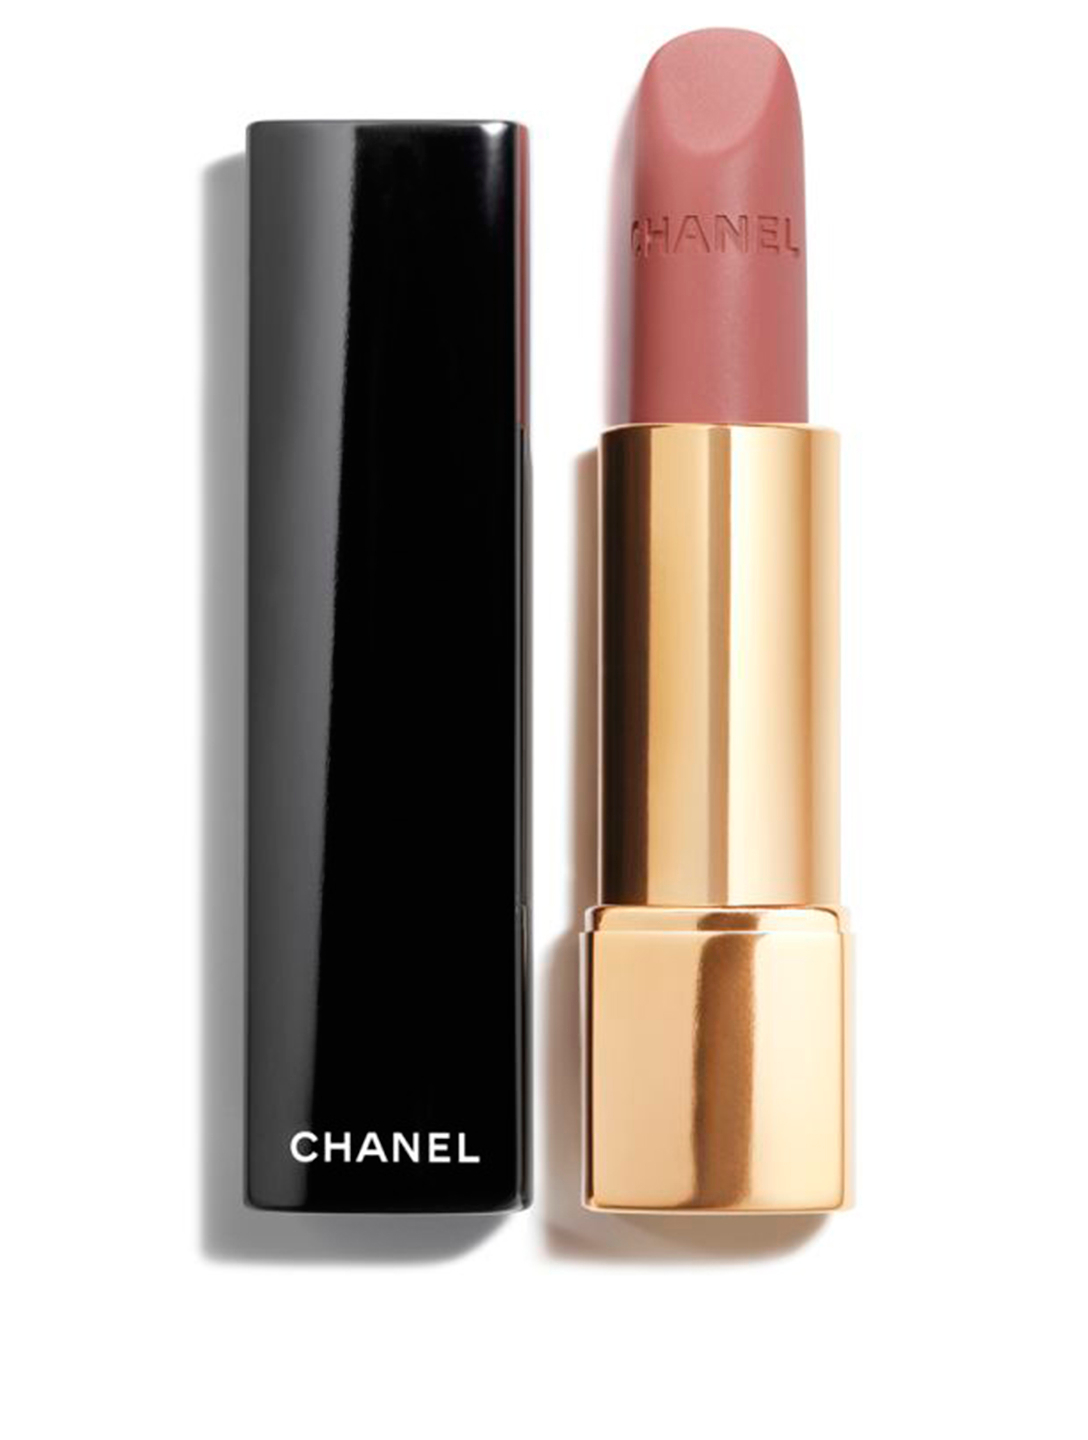 CHANEL Luminous Matte Lip Colour - Limited-Edition Matte Packaging CHANEL Pink